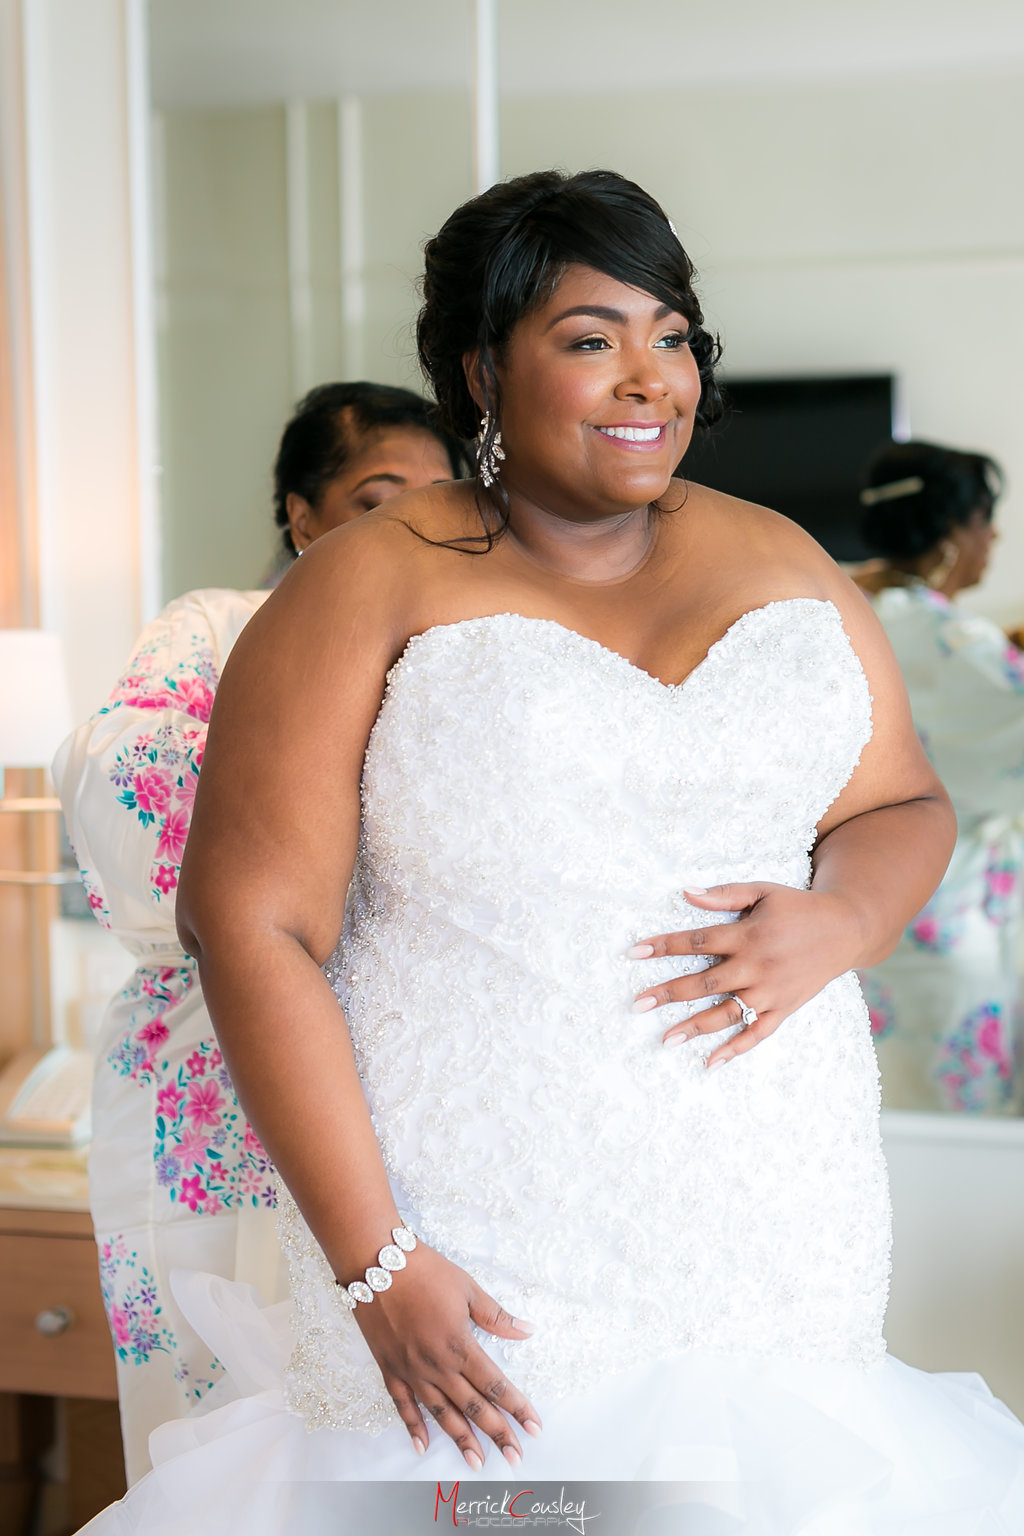 REAL WEDDING | WHITE, GOLD AND COBALT JAMAICAN DESTINATION WEDDING | Merrick Cousley Photography | Pretty Pear BrideREAL WEDDING | WHITE, GOLD AND COBALT JAMAICAN DESTINATION WEDDING | Merrick Cousley Photography | Pretty Pear Bride